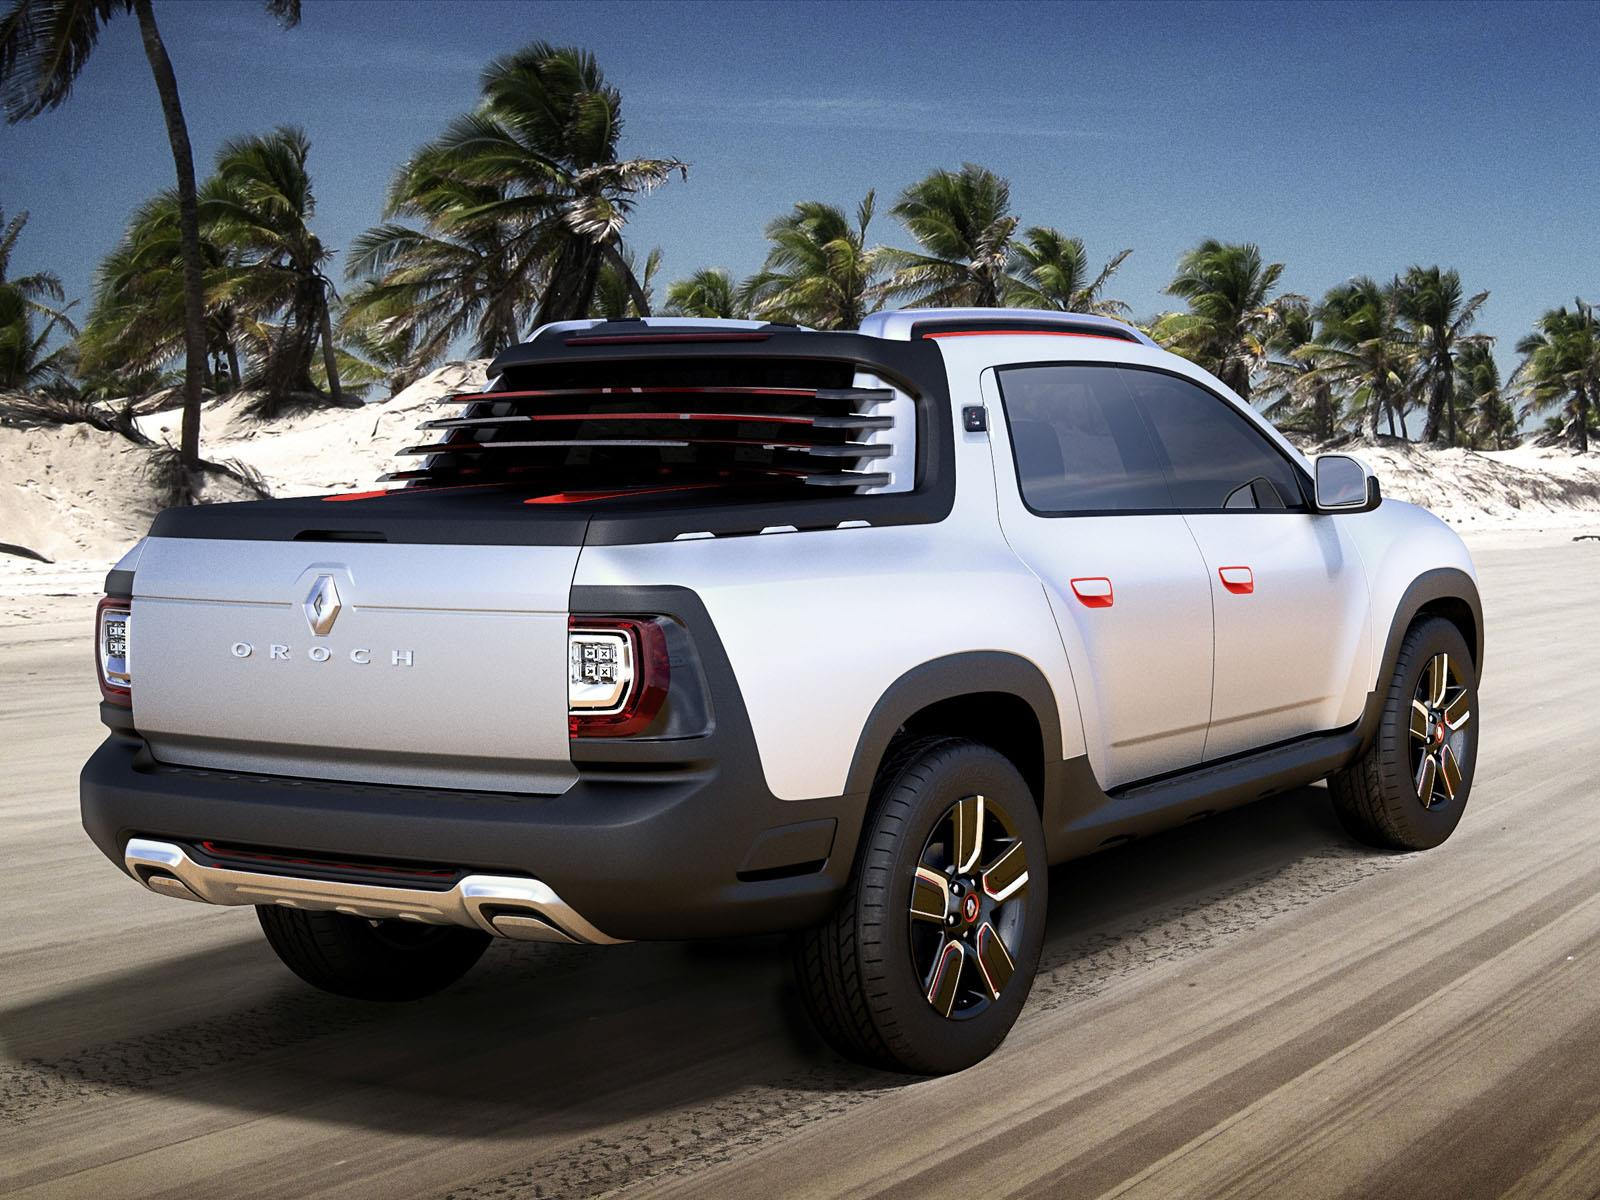 sal n de san pablo 2014 renault duster oroch la pick up. Black Bedroom Furniture Sets. Home Design Ideas